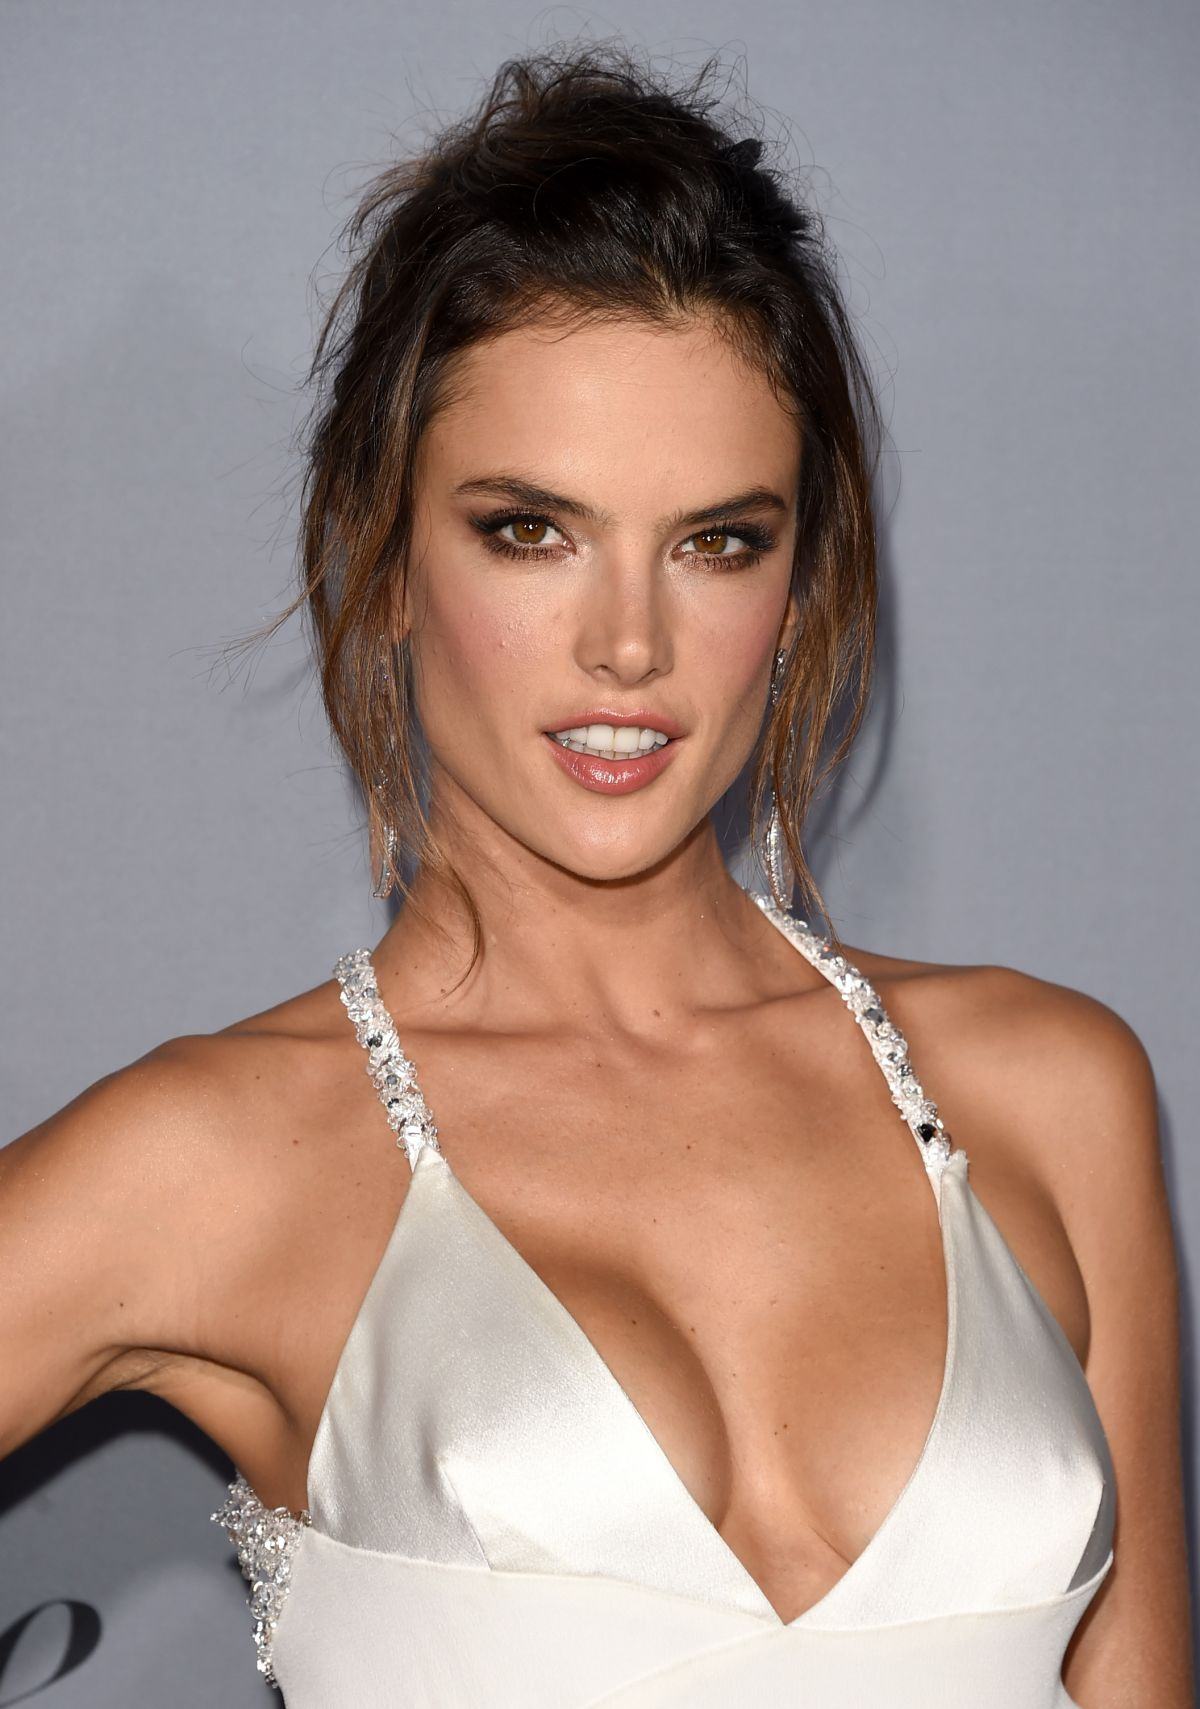 Alessandra Ambrosio Archives - Page 20 of 48 - HawtCelebs - HawtCelebs